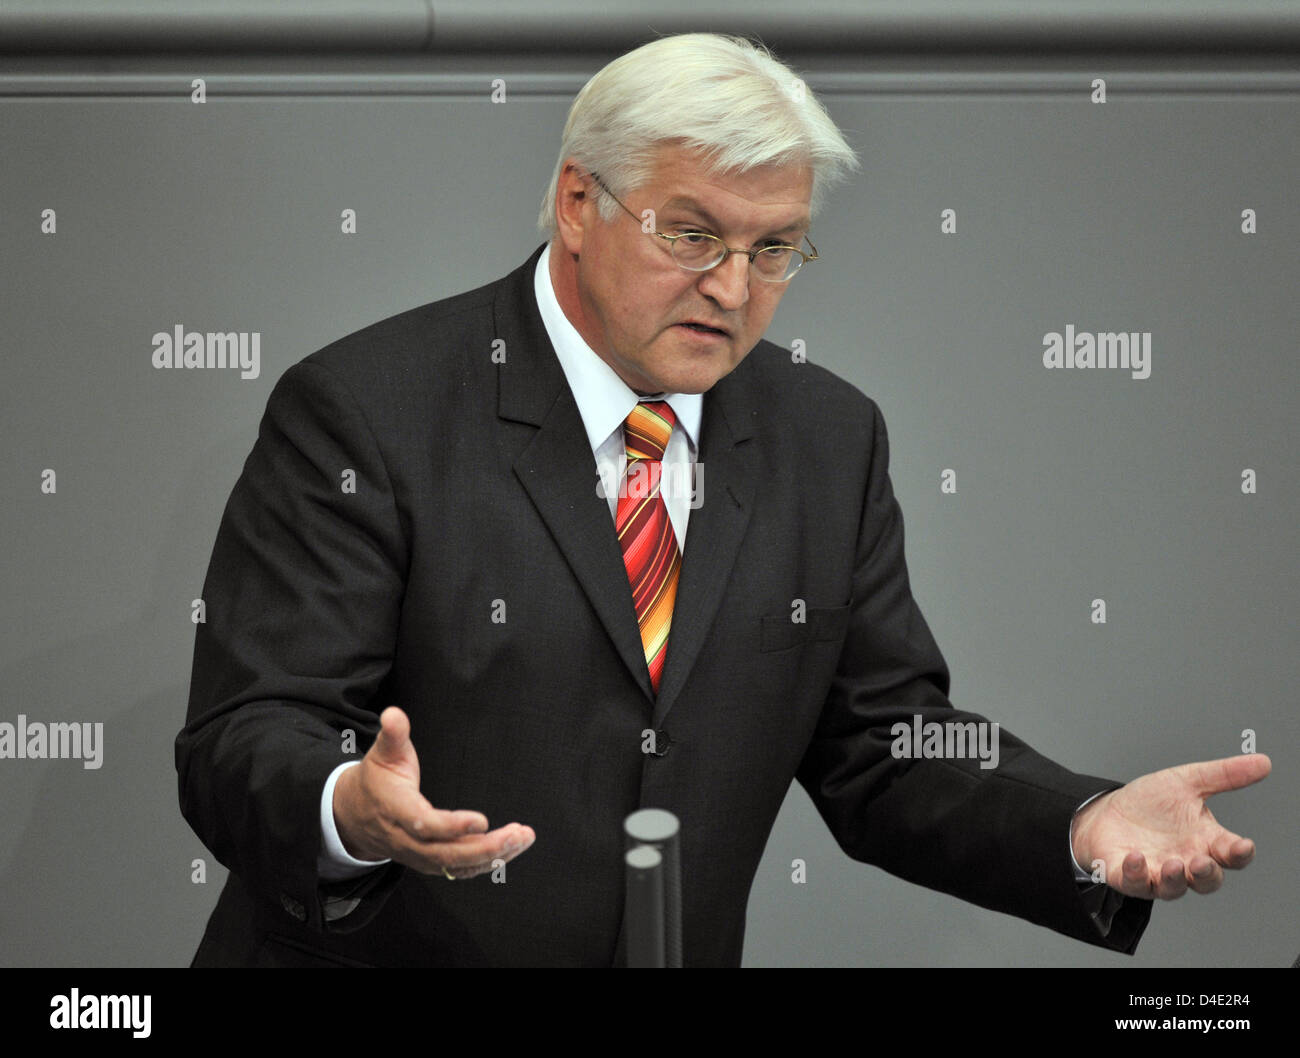 German Foreign Minister Frank-Walter Steinmeier delivers a speech during a special hearing of the German Bundestag in Berlin, Germany, 07 October 2008. German federal cabinet has agreed on the 14-month-extention of the Afghanistan mandate and an additional deployment of 1,000 soldiers, then numbering 4,500 in total. The decision has yet to be ratified by the German Bundestag. Photo Stock Photo